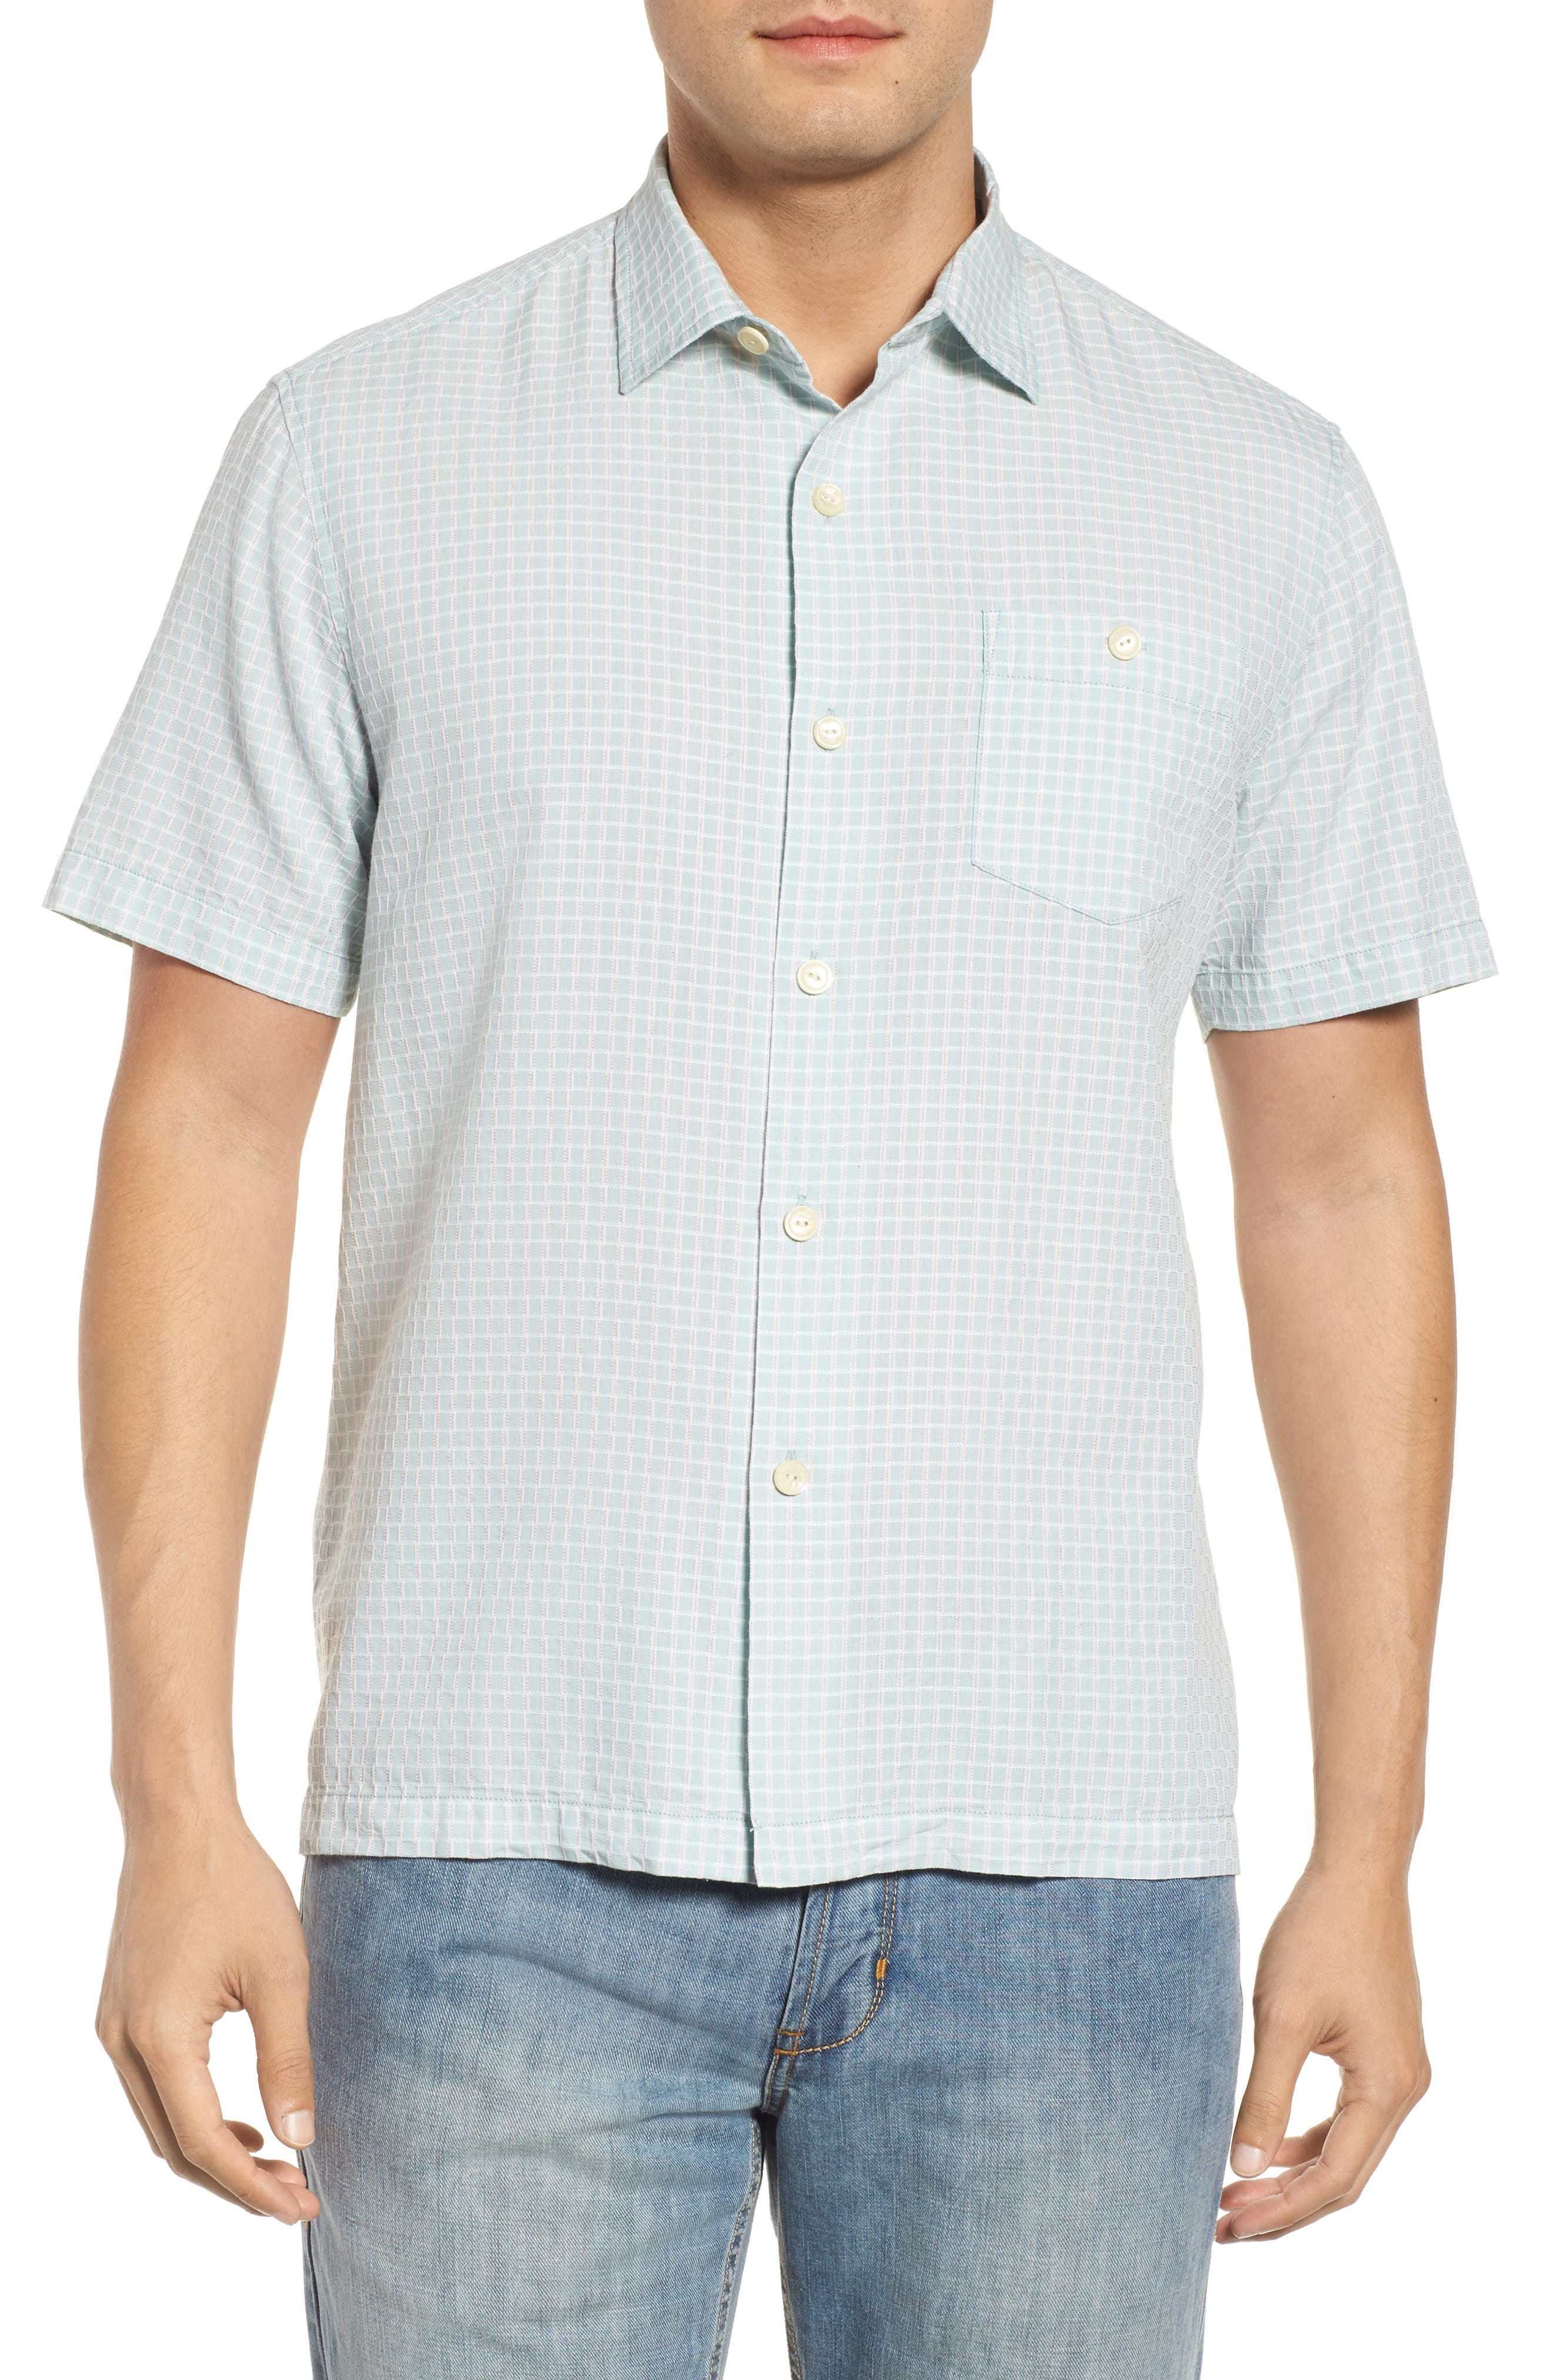 Once in a Tile Regular Fit Sport Shirt,                             Main thumbnail 3, color,